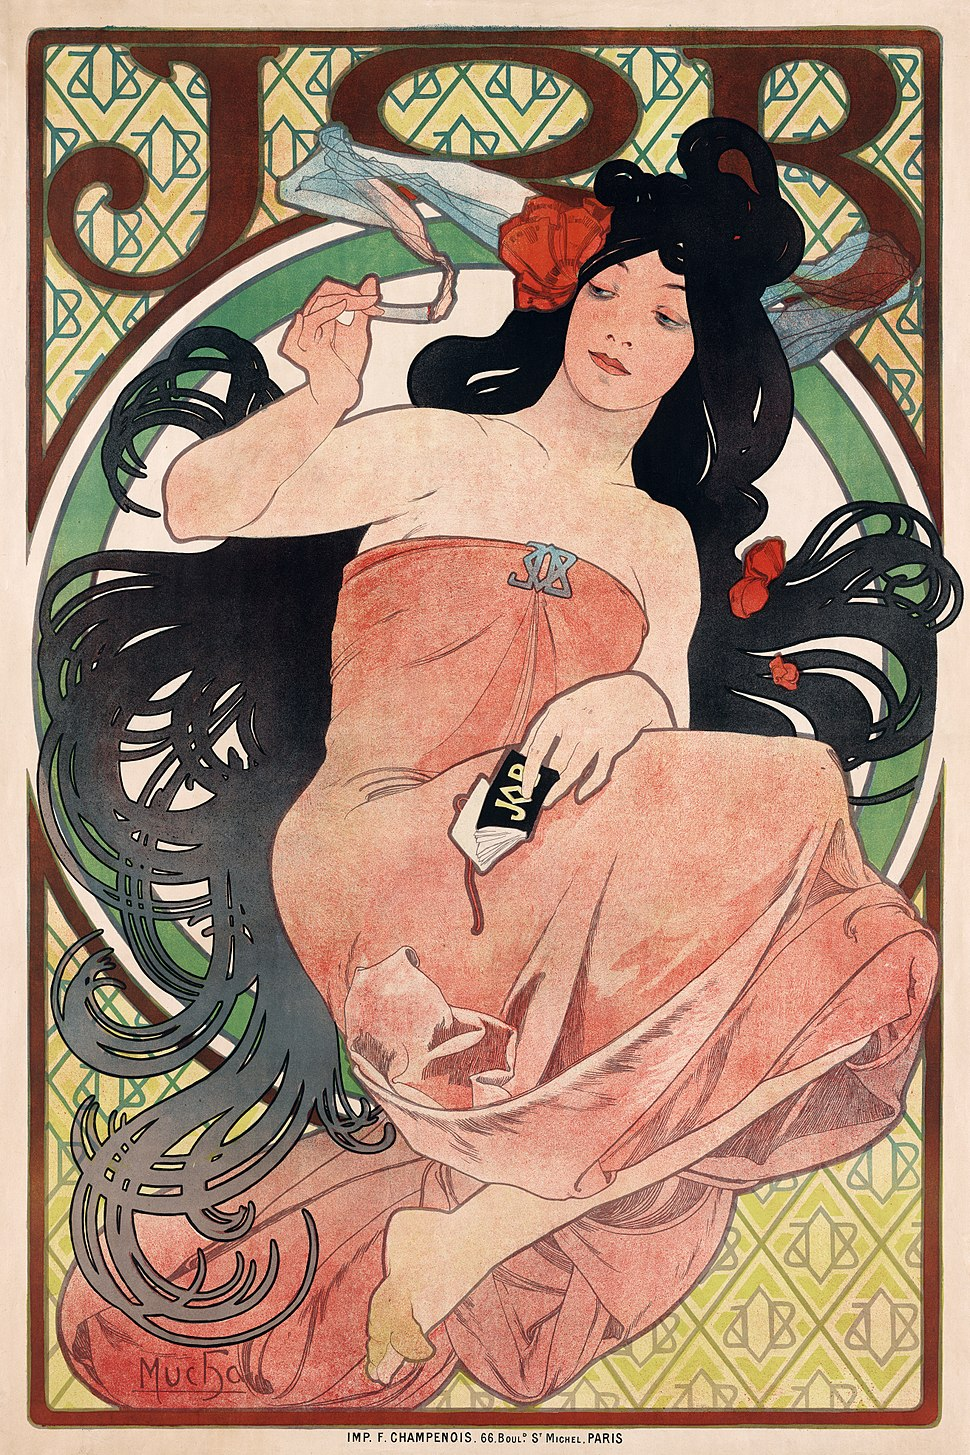 JOB, cigarette paper advertisement by Alfons Mucha, 1898